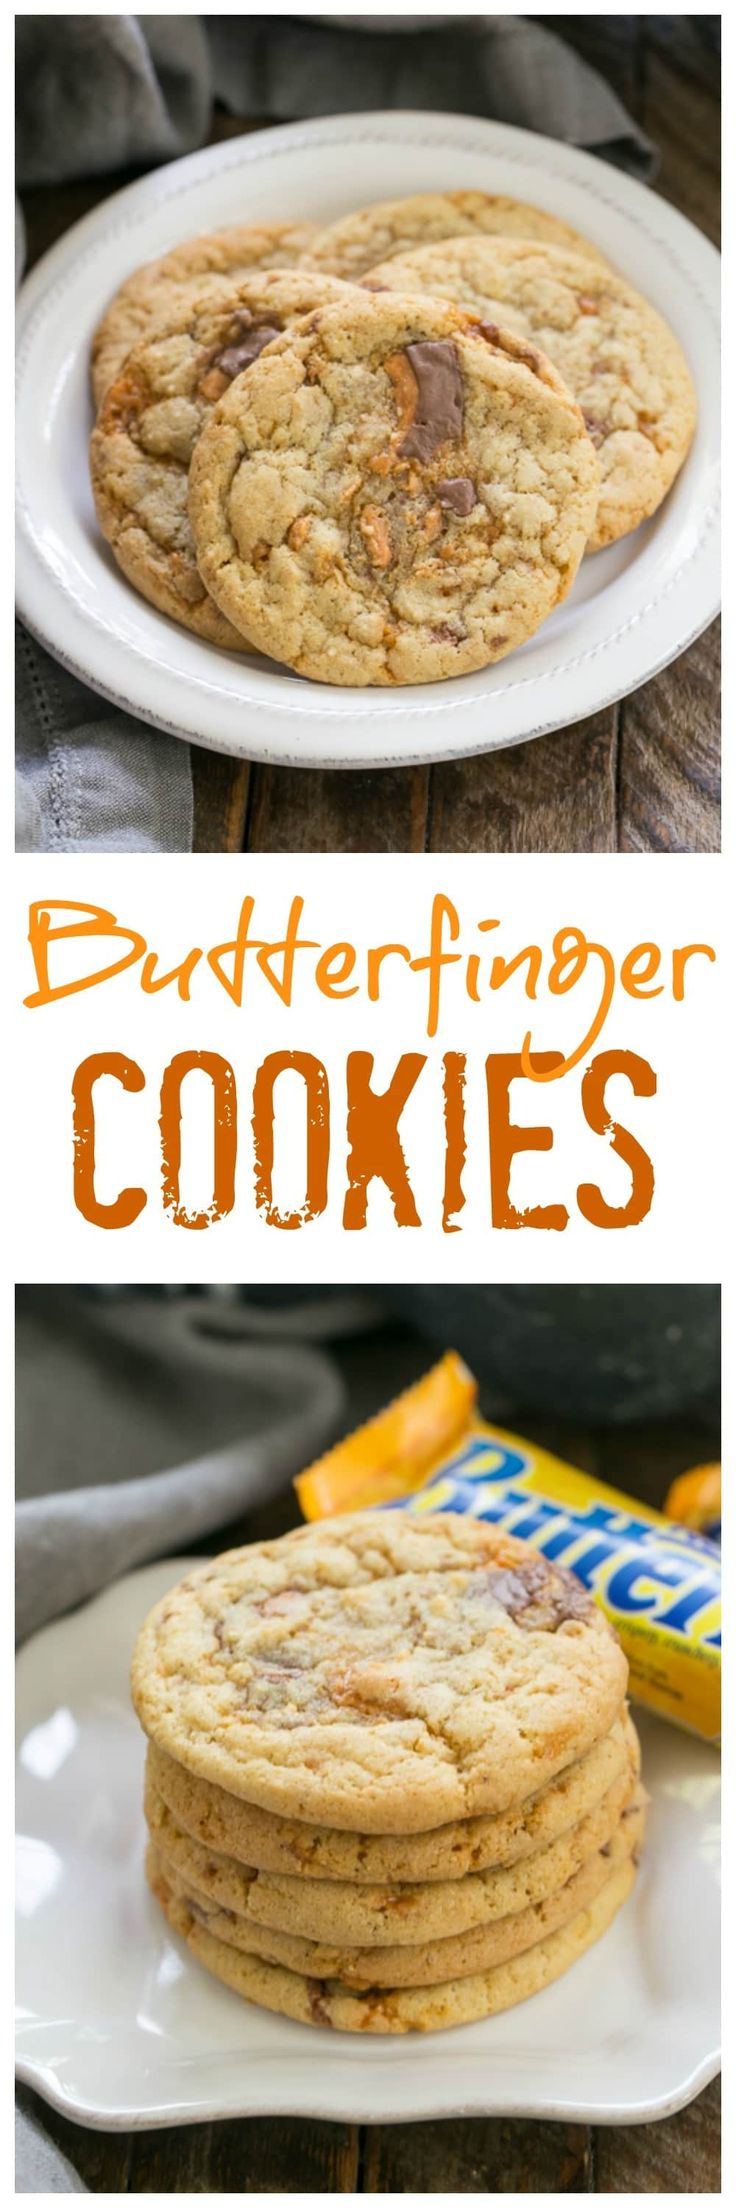 Butterfinger Cookies   Chewy, buttery cookies chock full of Butterfinger chunks @lizzydo